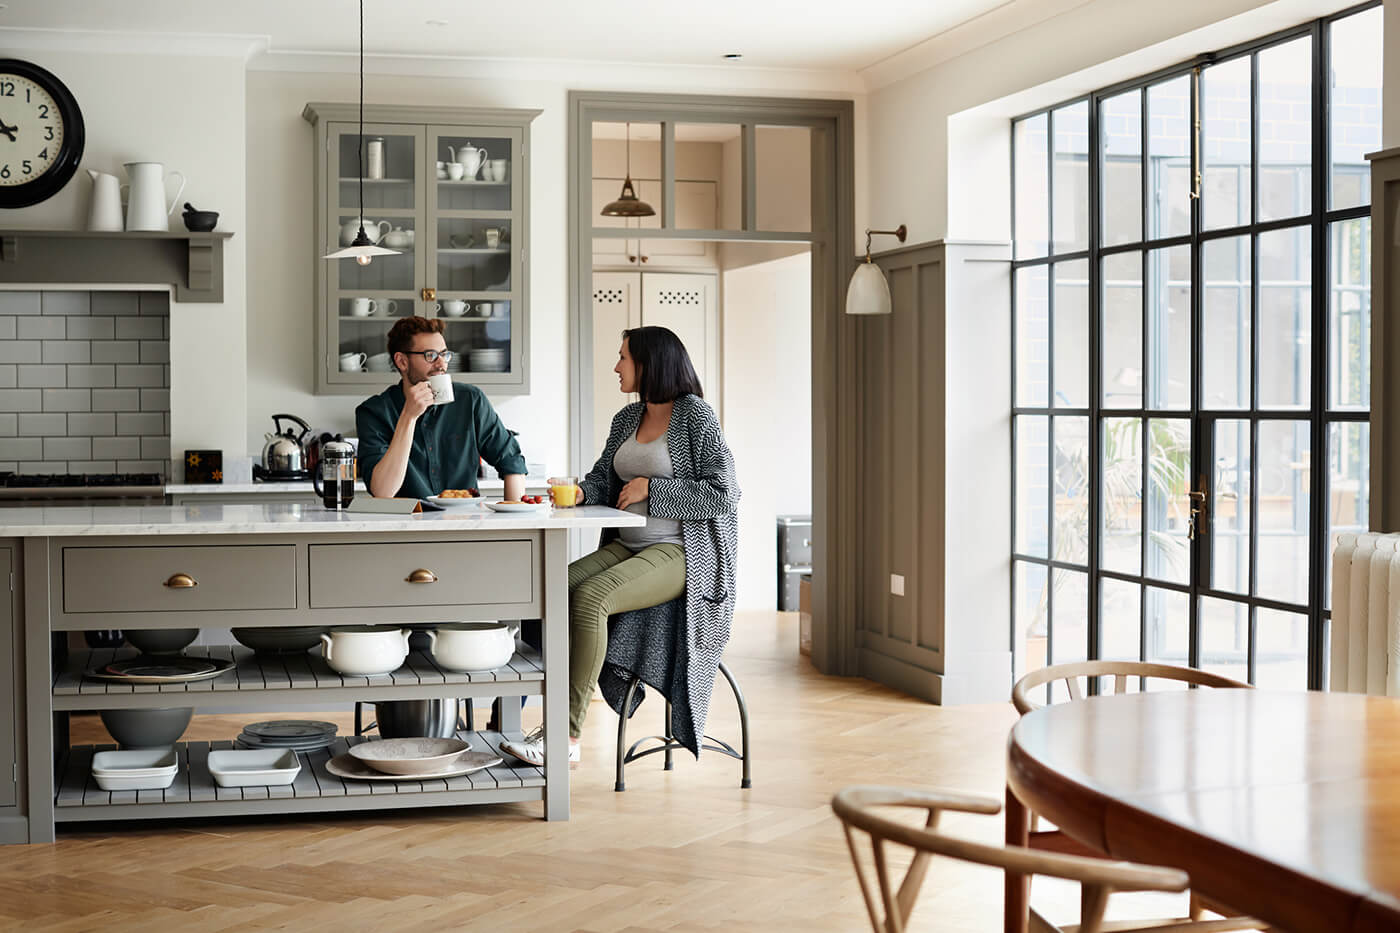 a man and woman eating breakfast in the kitchen.